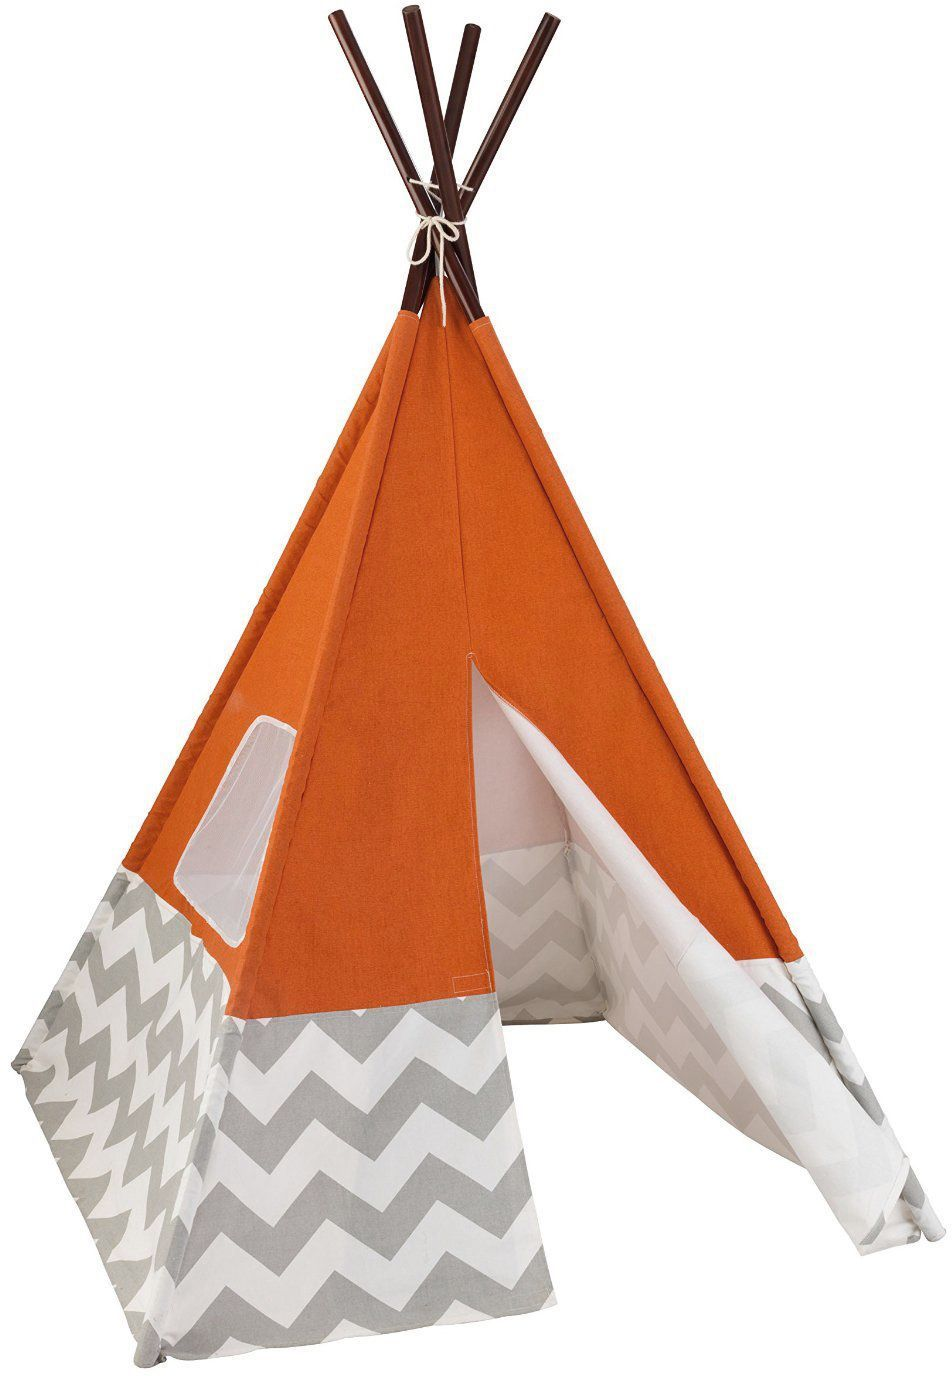 tente tipi orange pour enfant 109x176cm sur jardindeco. Black Bedroom Furniture Sets. Home Design Ideas